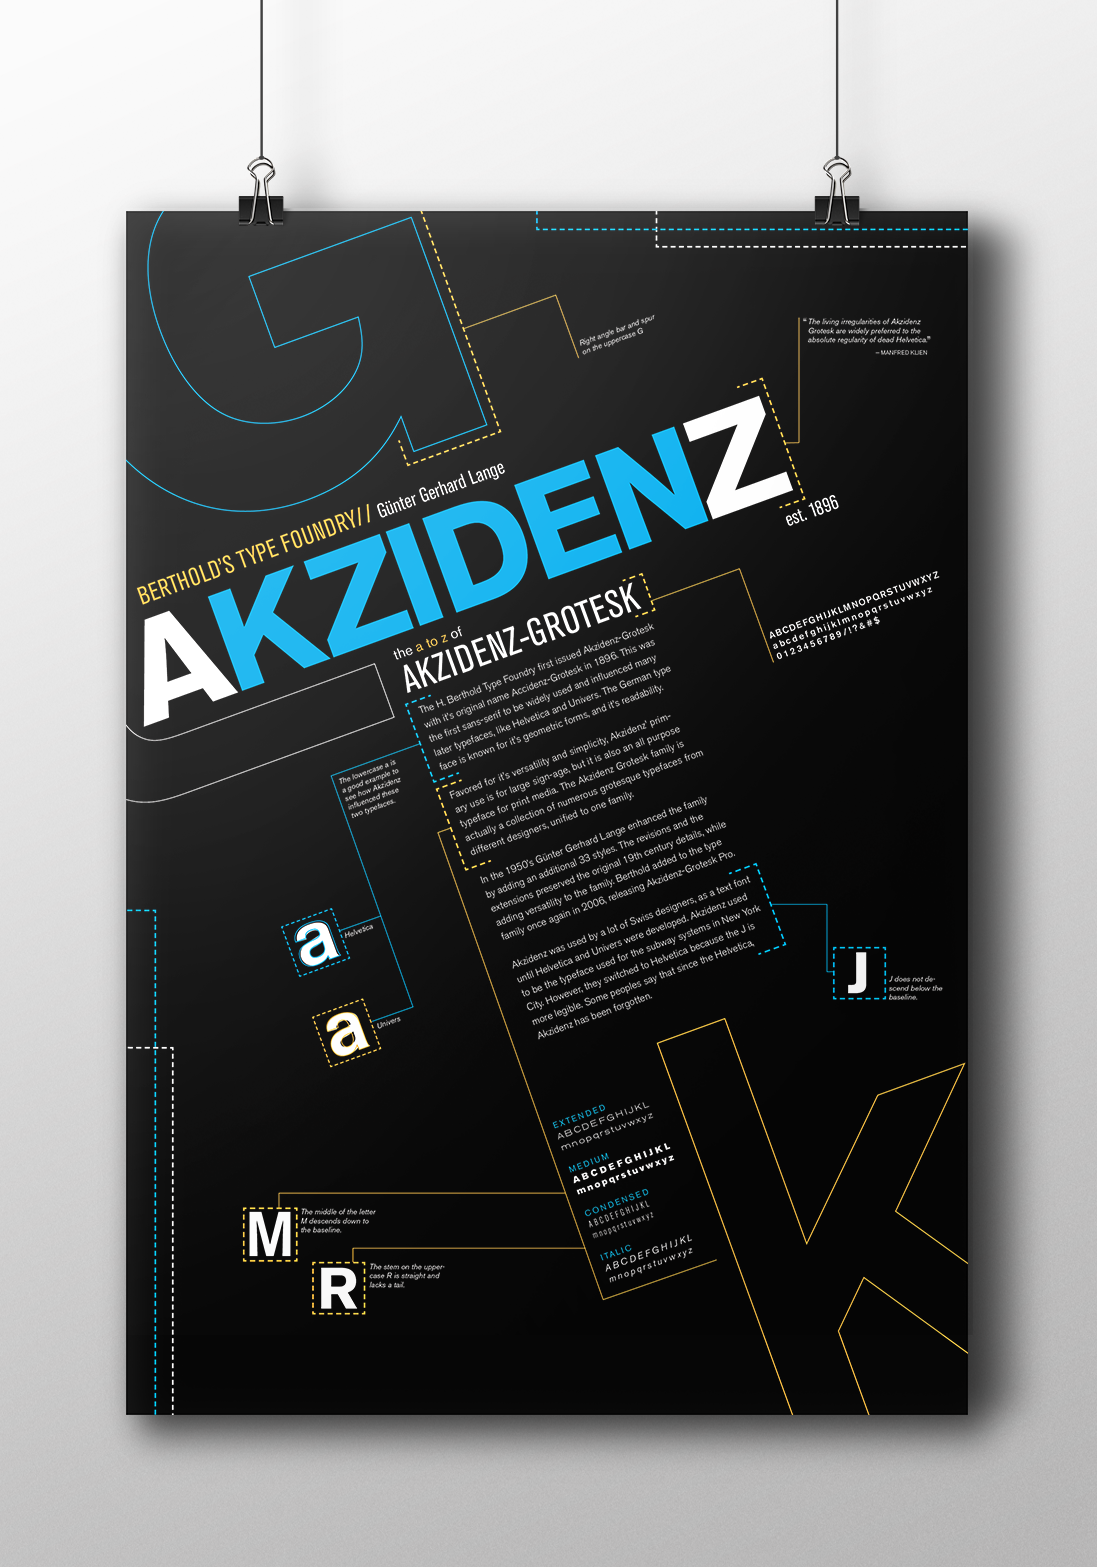 akzidenz Akzidenz Grotesk Typeface poster typeface poster Akzidenz-Grotesk print poster art typefaces posters type poster Akzidenz Happen letters lines